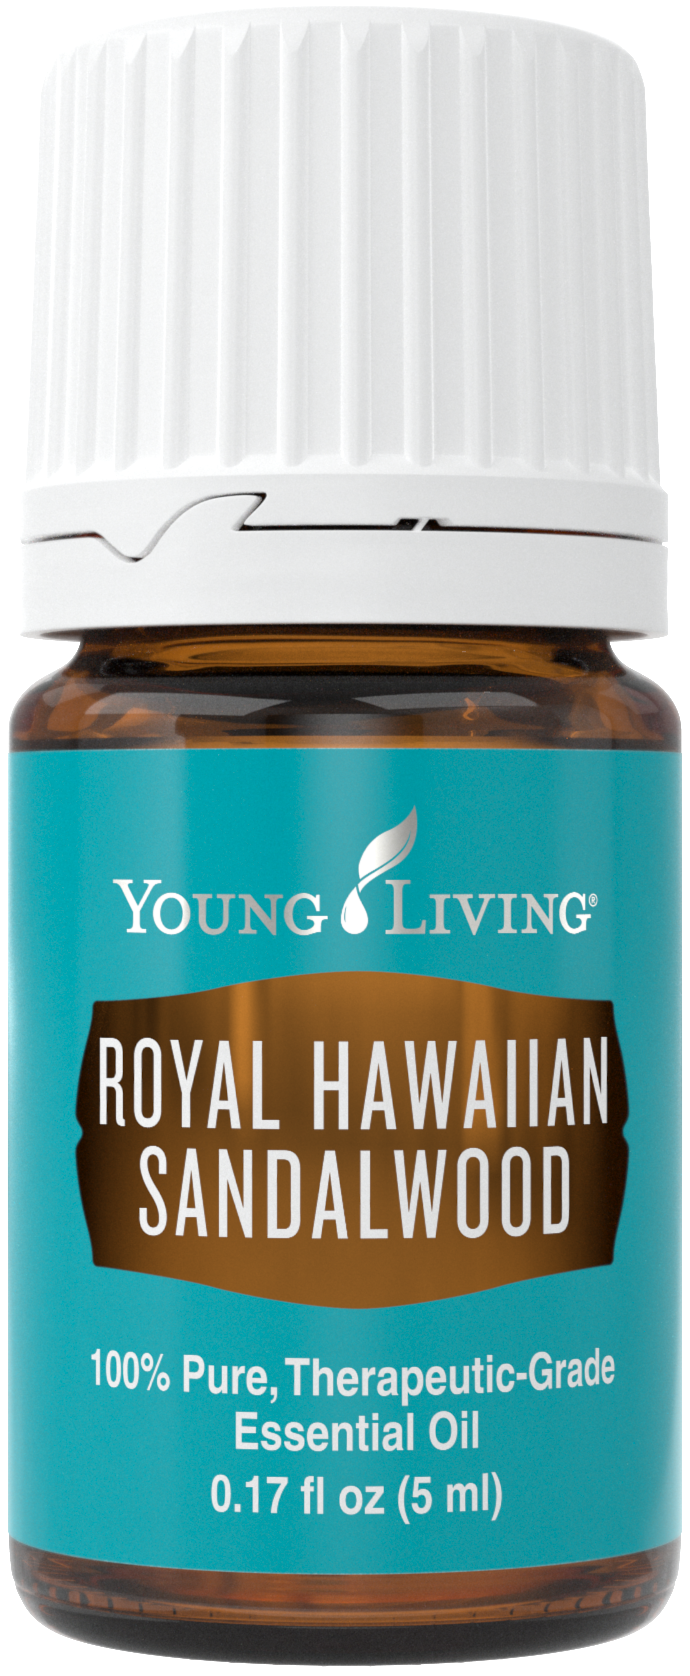 royalhawaiiansandalwood_5ml_silo_us_2016_24419025552_o